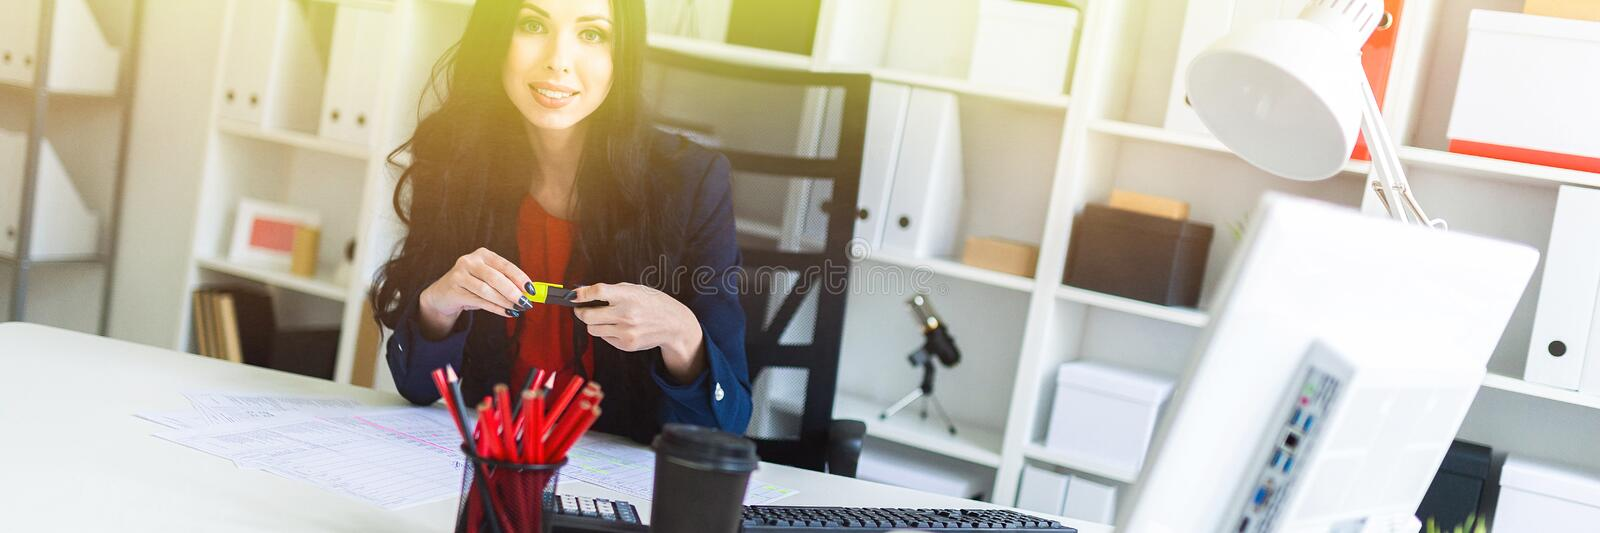 A beautiful young girl sits in the office at the table and holds a yellow marker in her hands. royalty free stock image